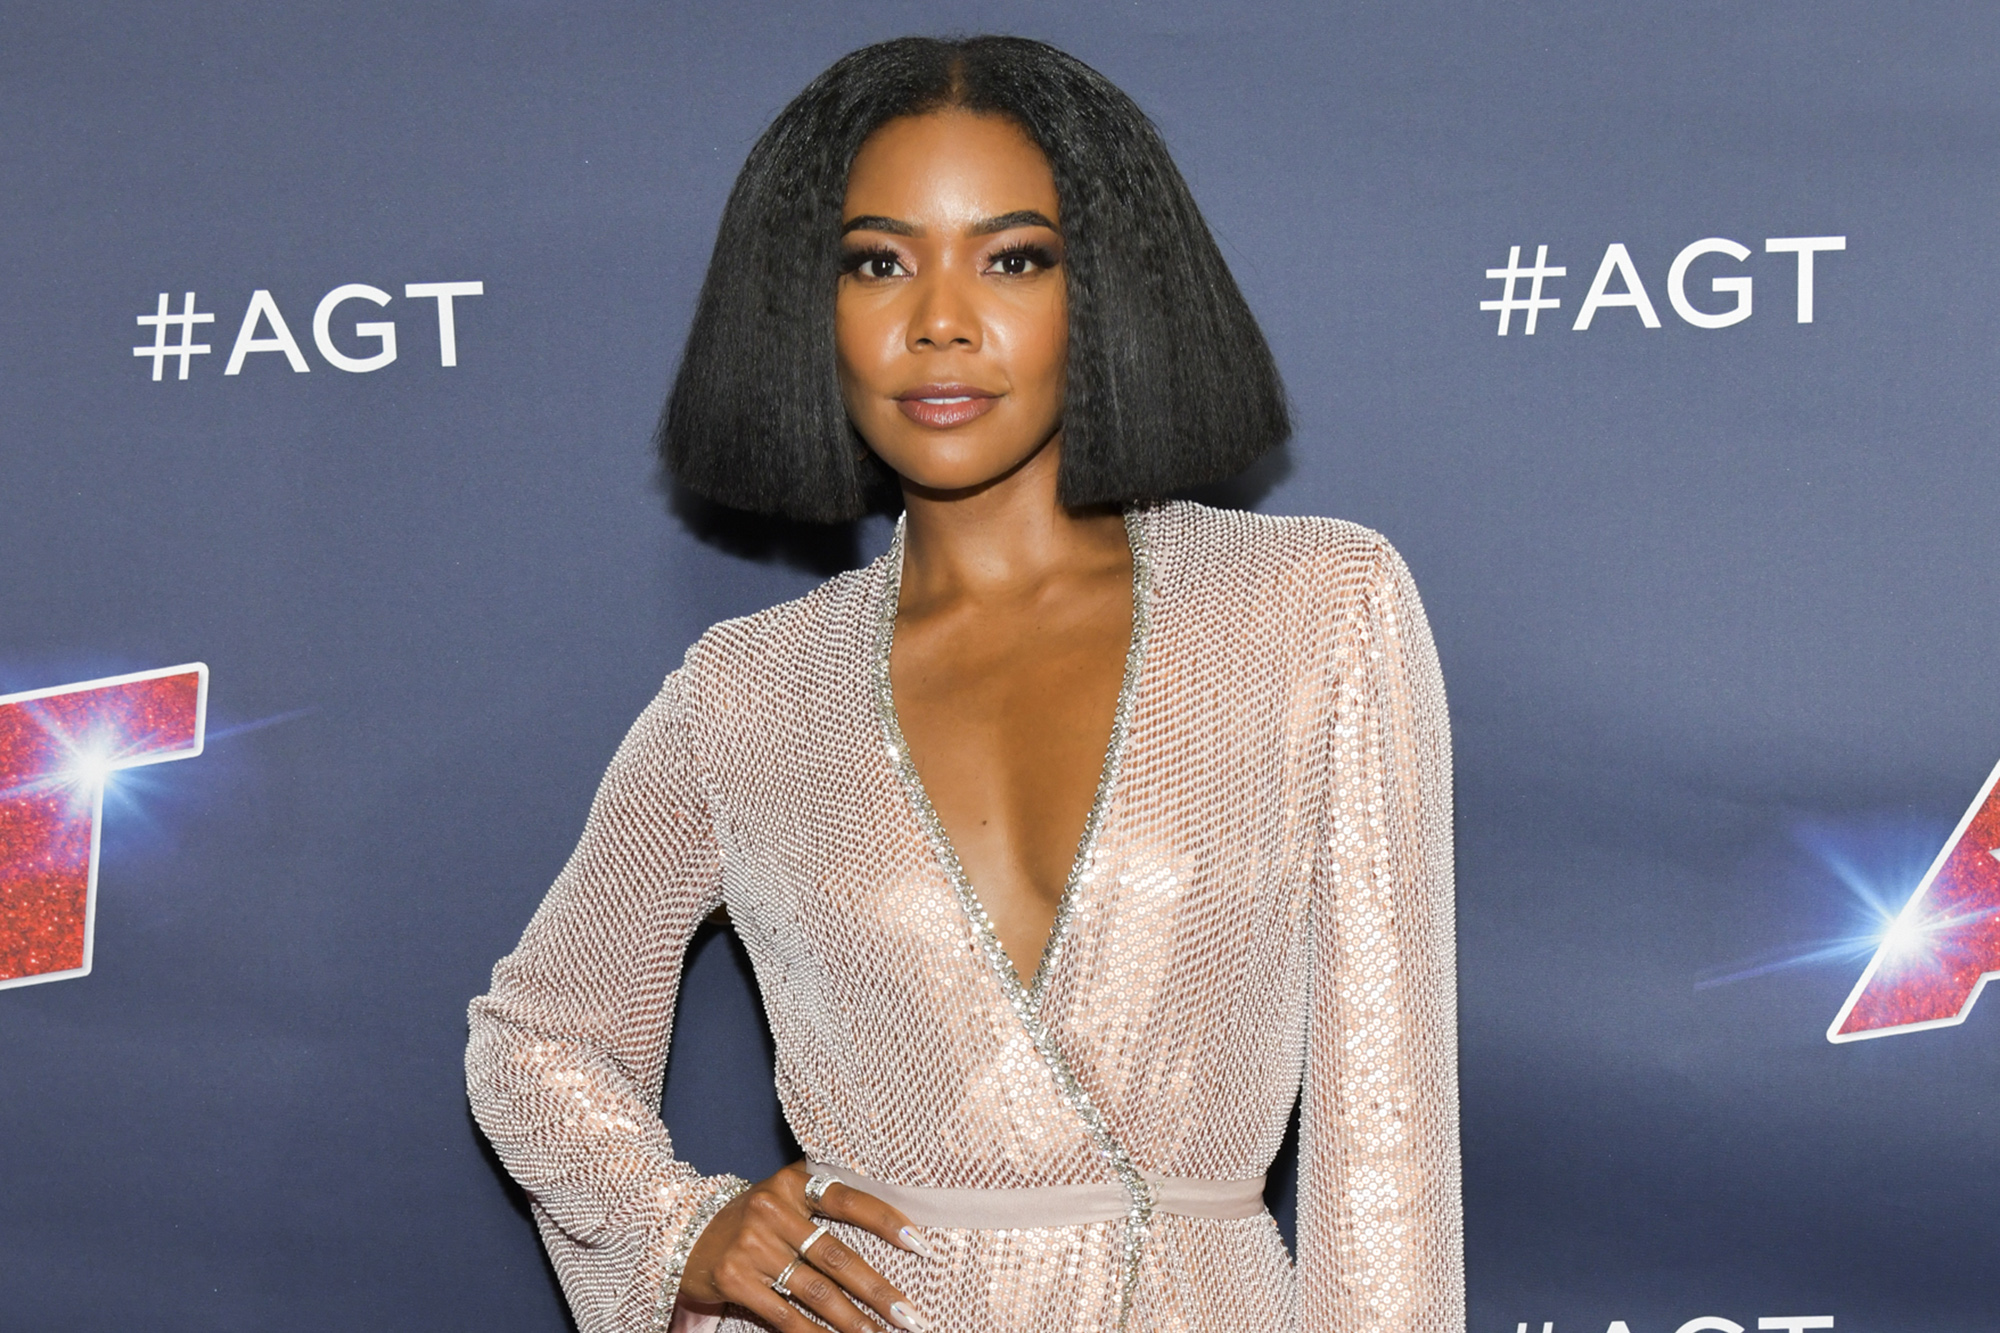 Gabrielle Union Drops A Motivational Message For Her Fans - See Her Latest Gorgeous Photo Session